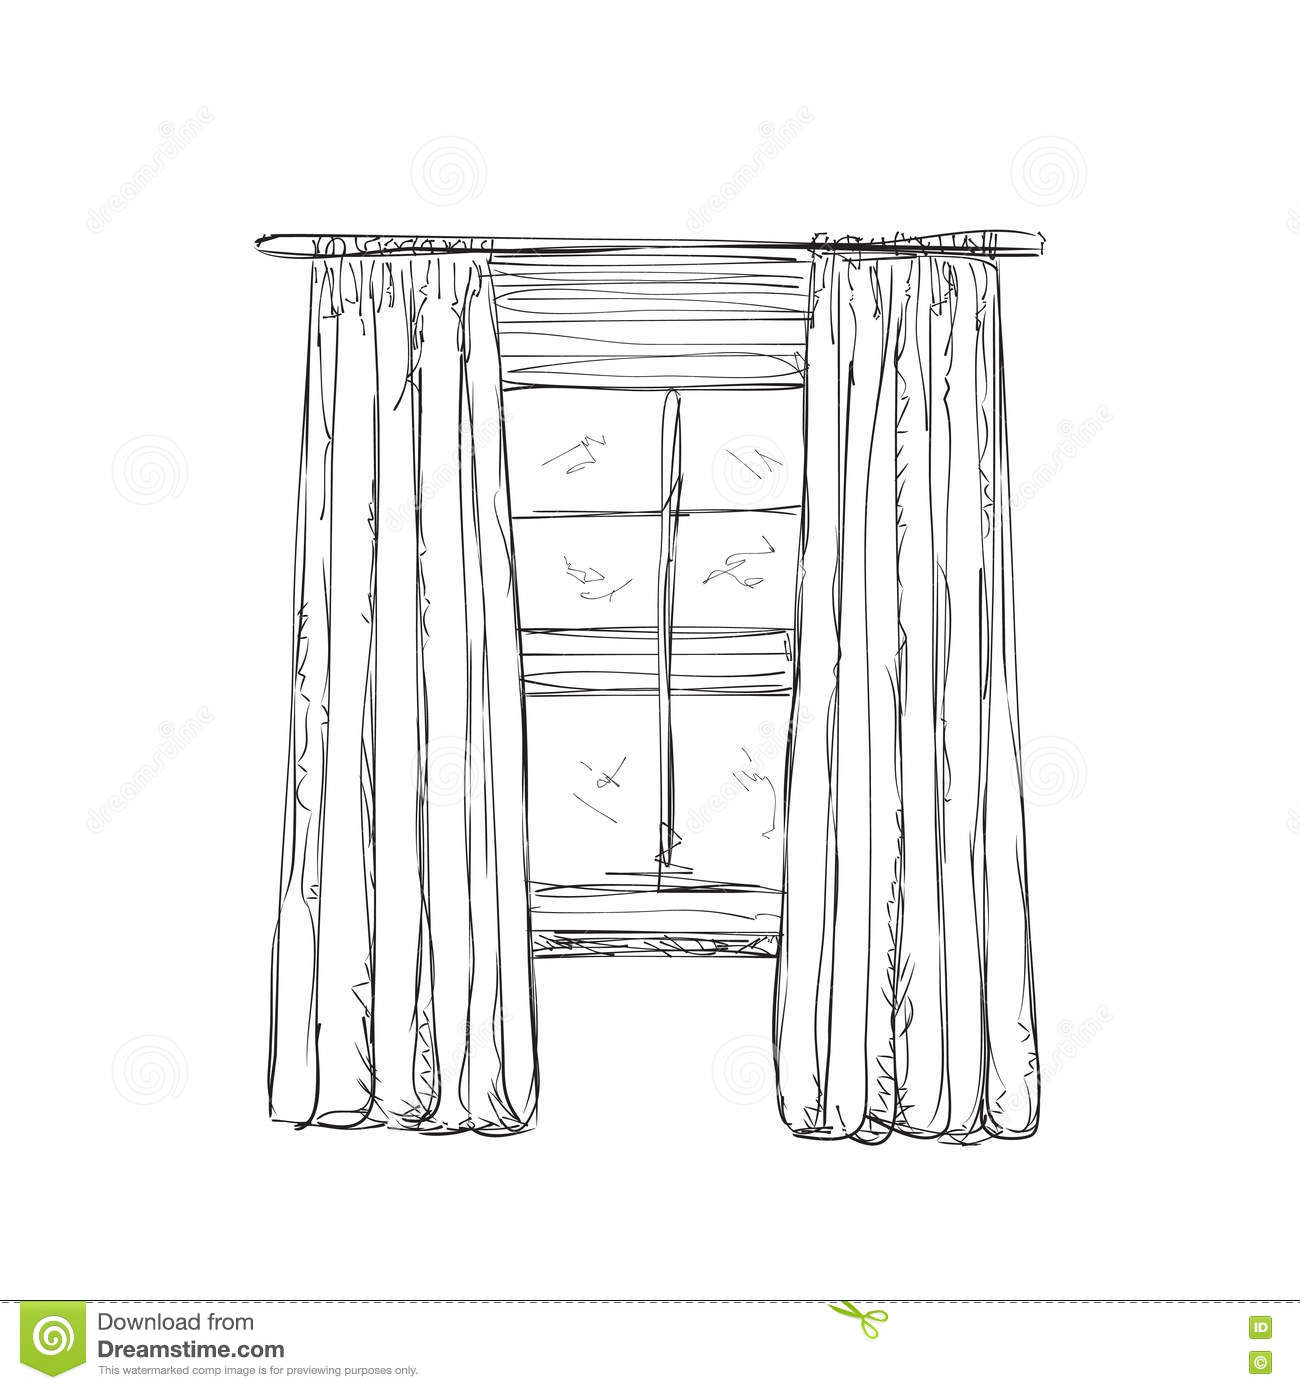 Illustration Of Window And Curtains Sketch Stock Vector - Illustration of vector, curtains: 71372826